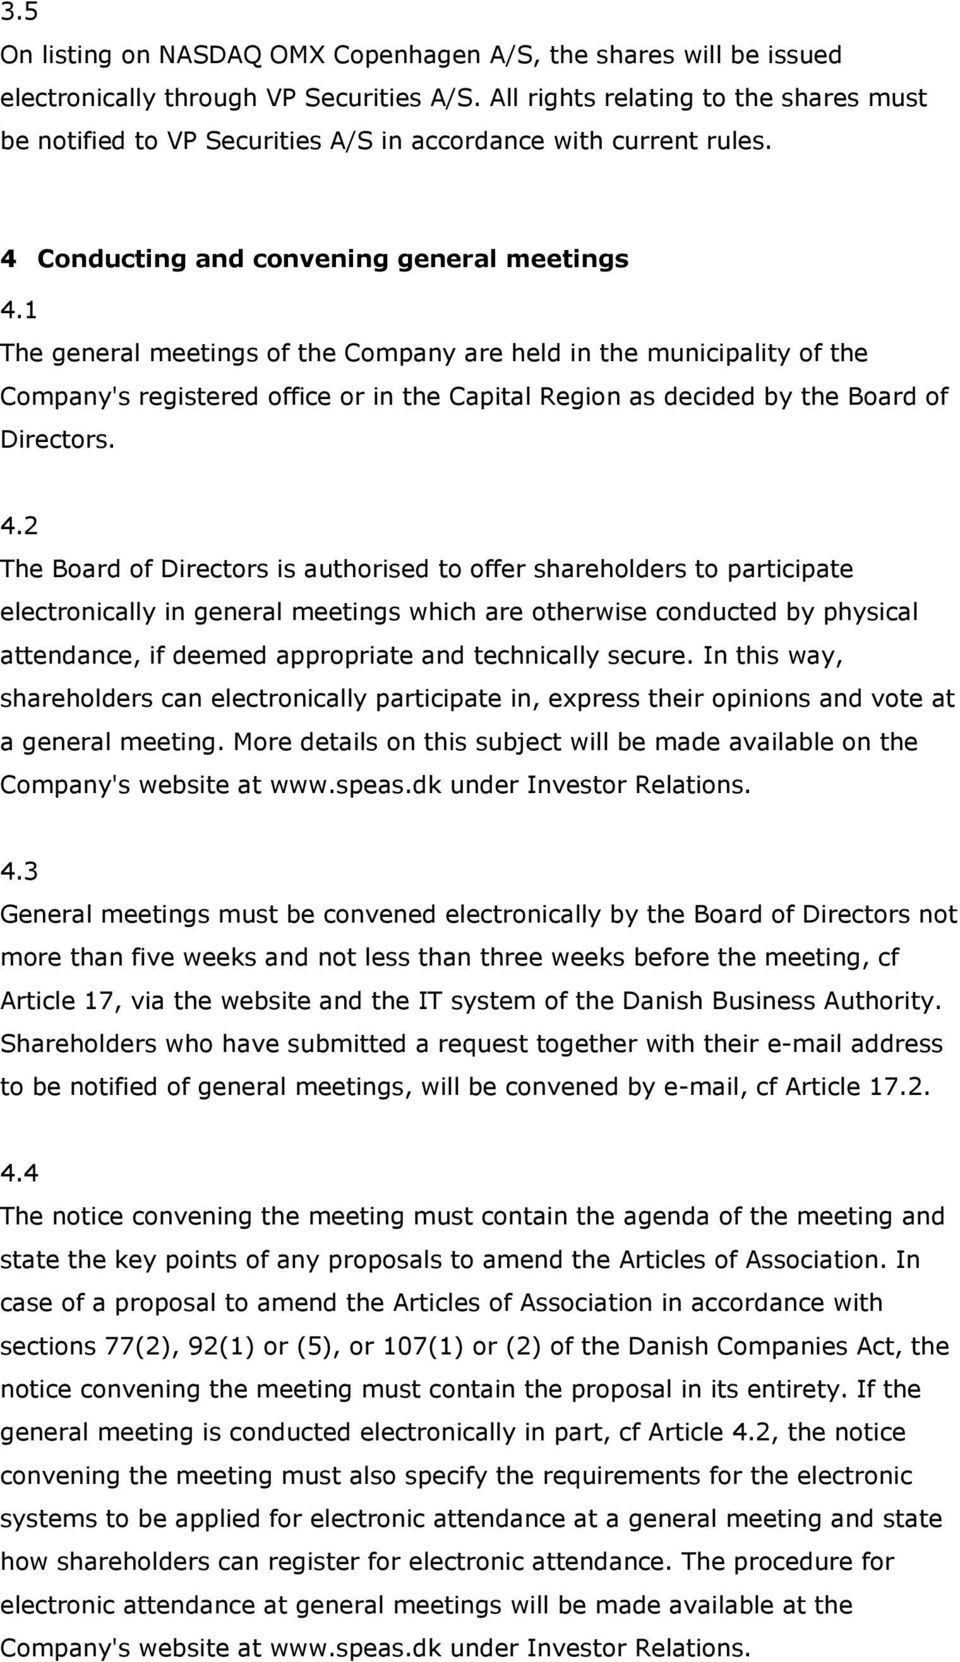 1 The general meetings of the Company are held in the municipality of the Company's registered office or in the Capital Region as decided by the Board of Directors. 4.